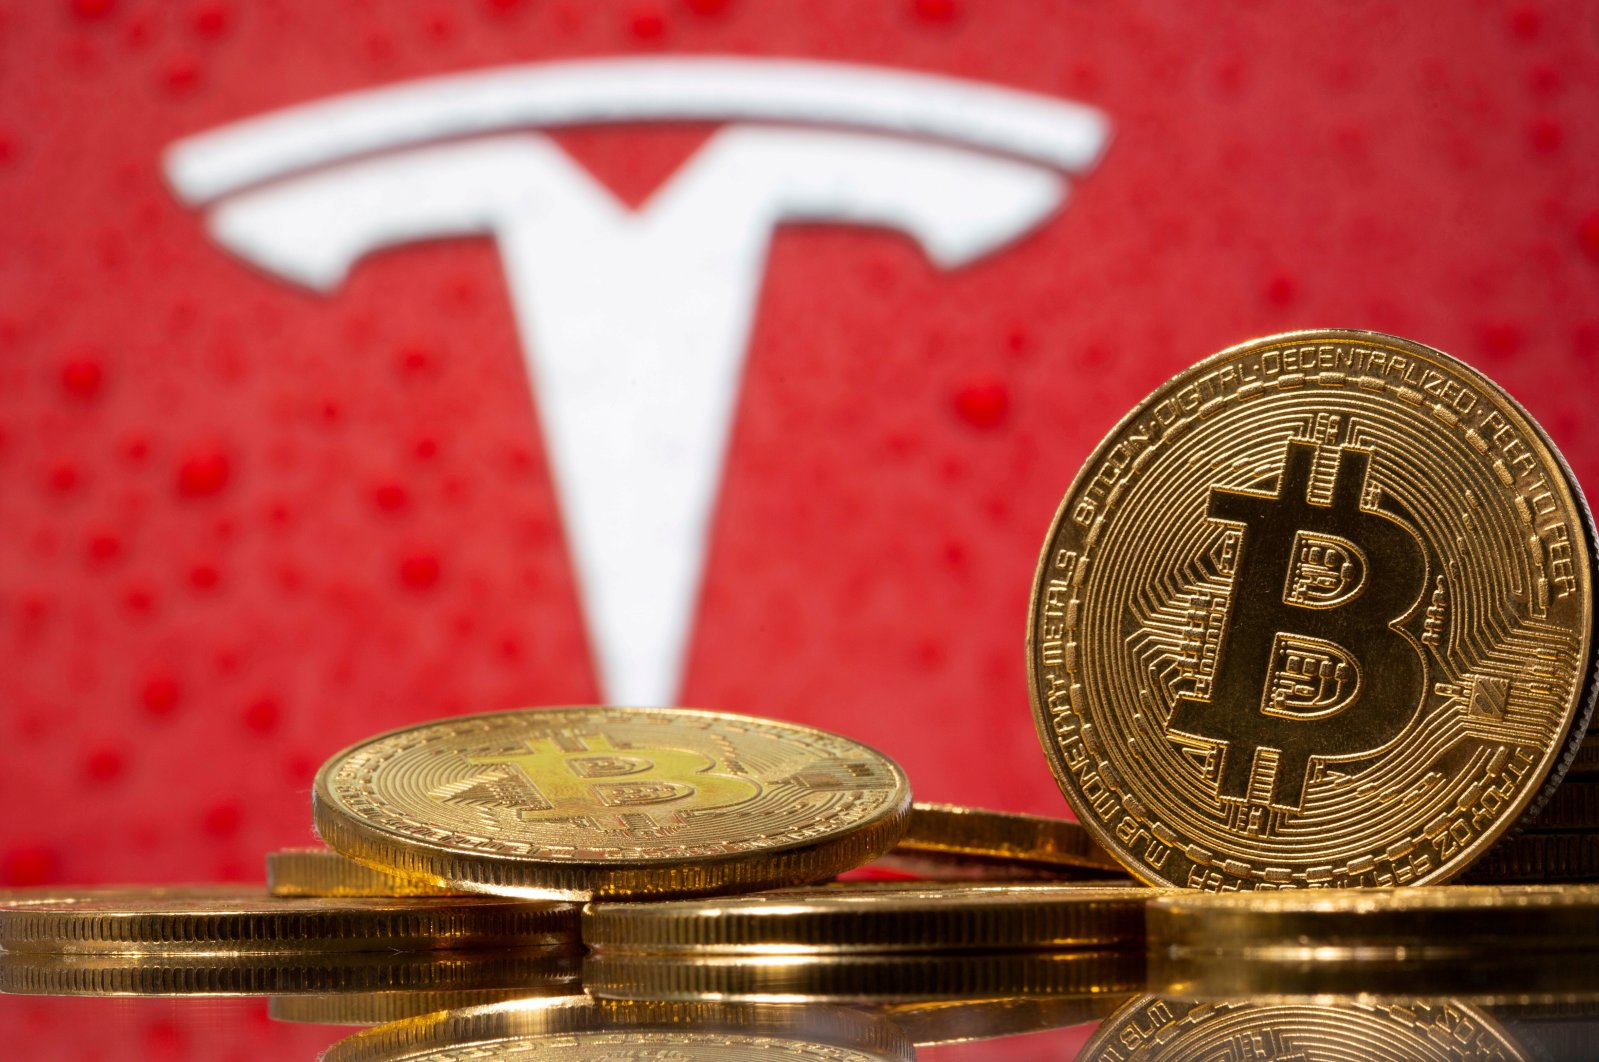 Representations of virtual currency bitcoin are seen in front of Tesla logo in this illustration, Feb. 9, 2021. (Reuters Photo)